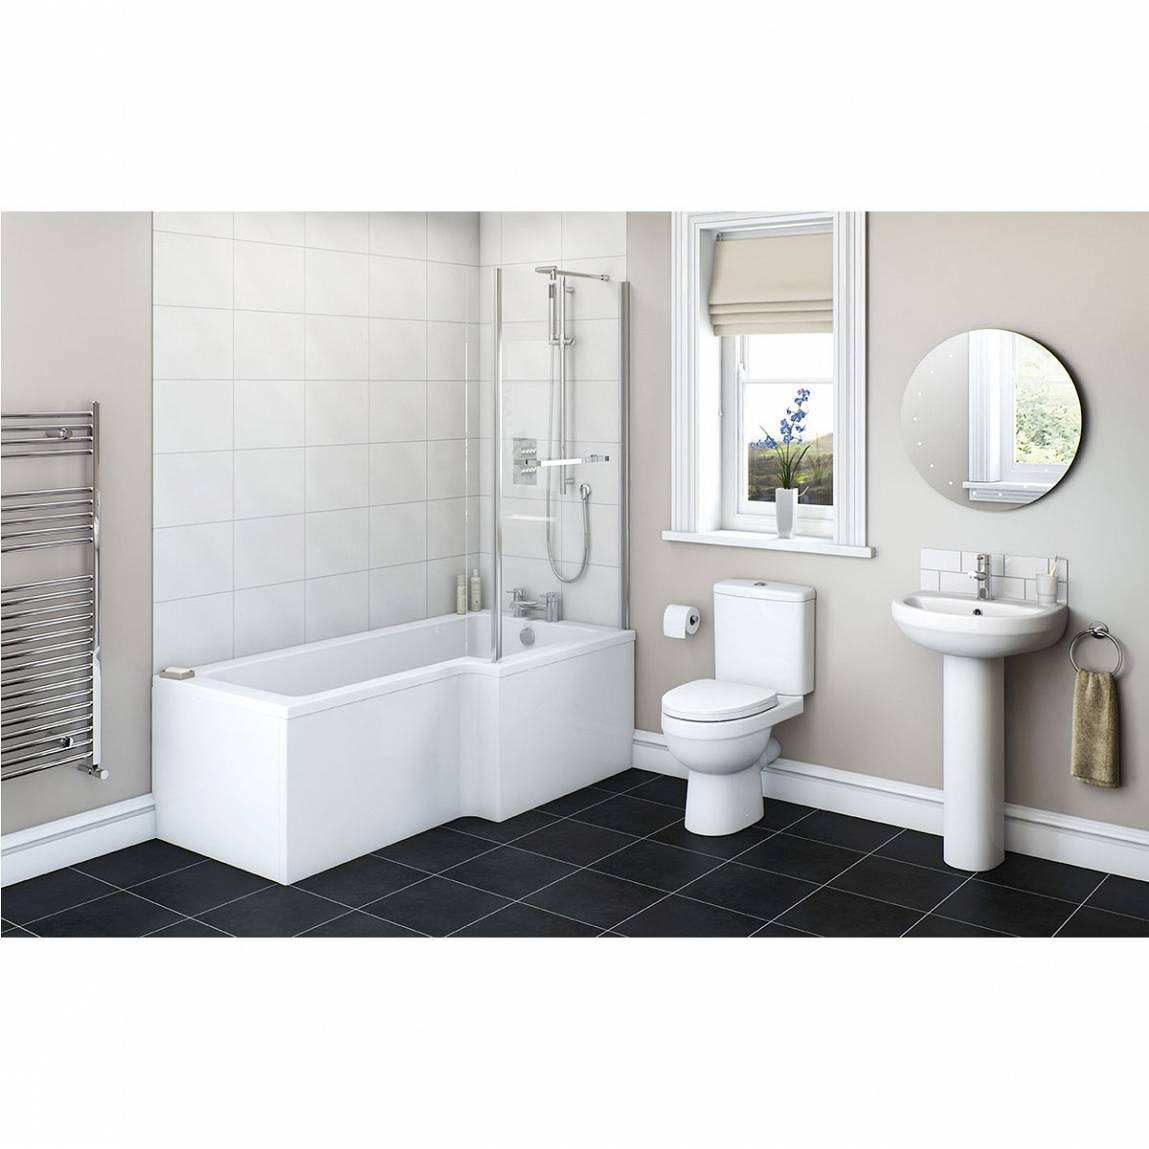 Image of Energy Bathroom Set with Boston 1500 x 850 Shower Bath Suite RH